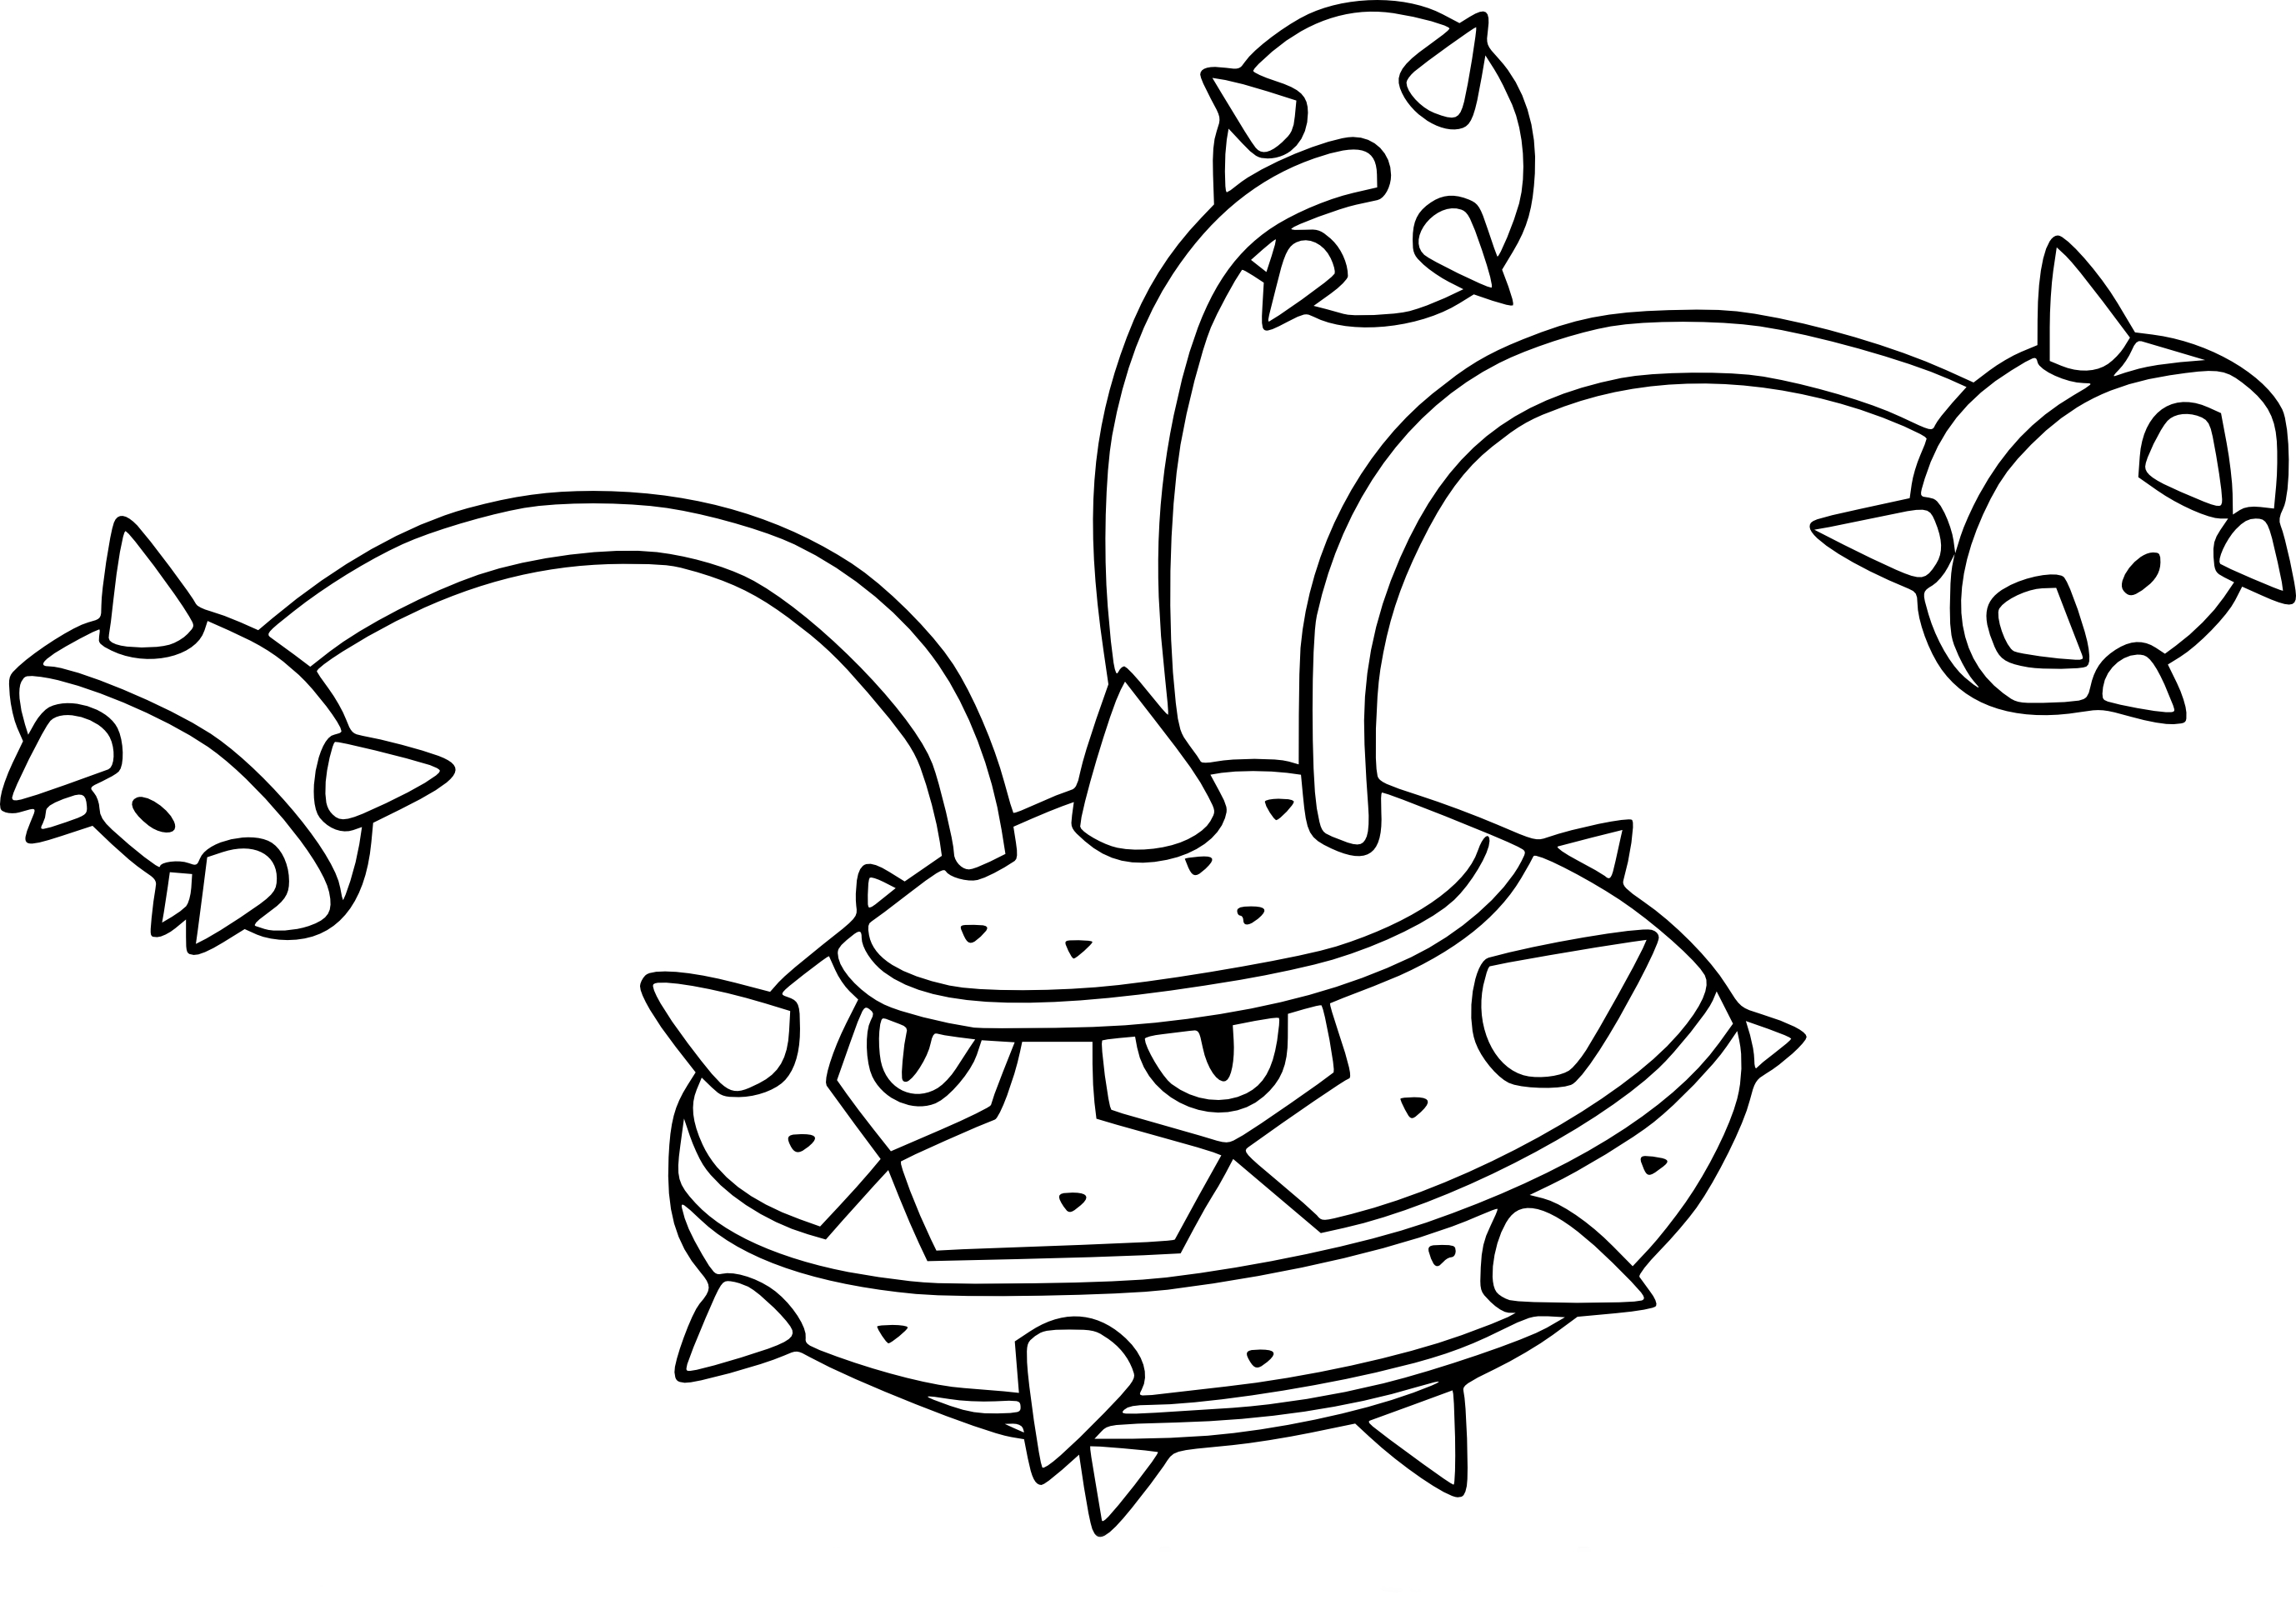 er coloring pages - photo#3